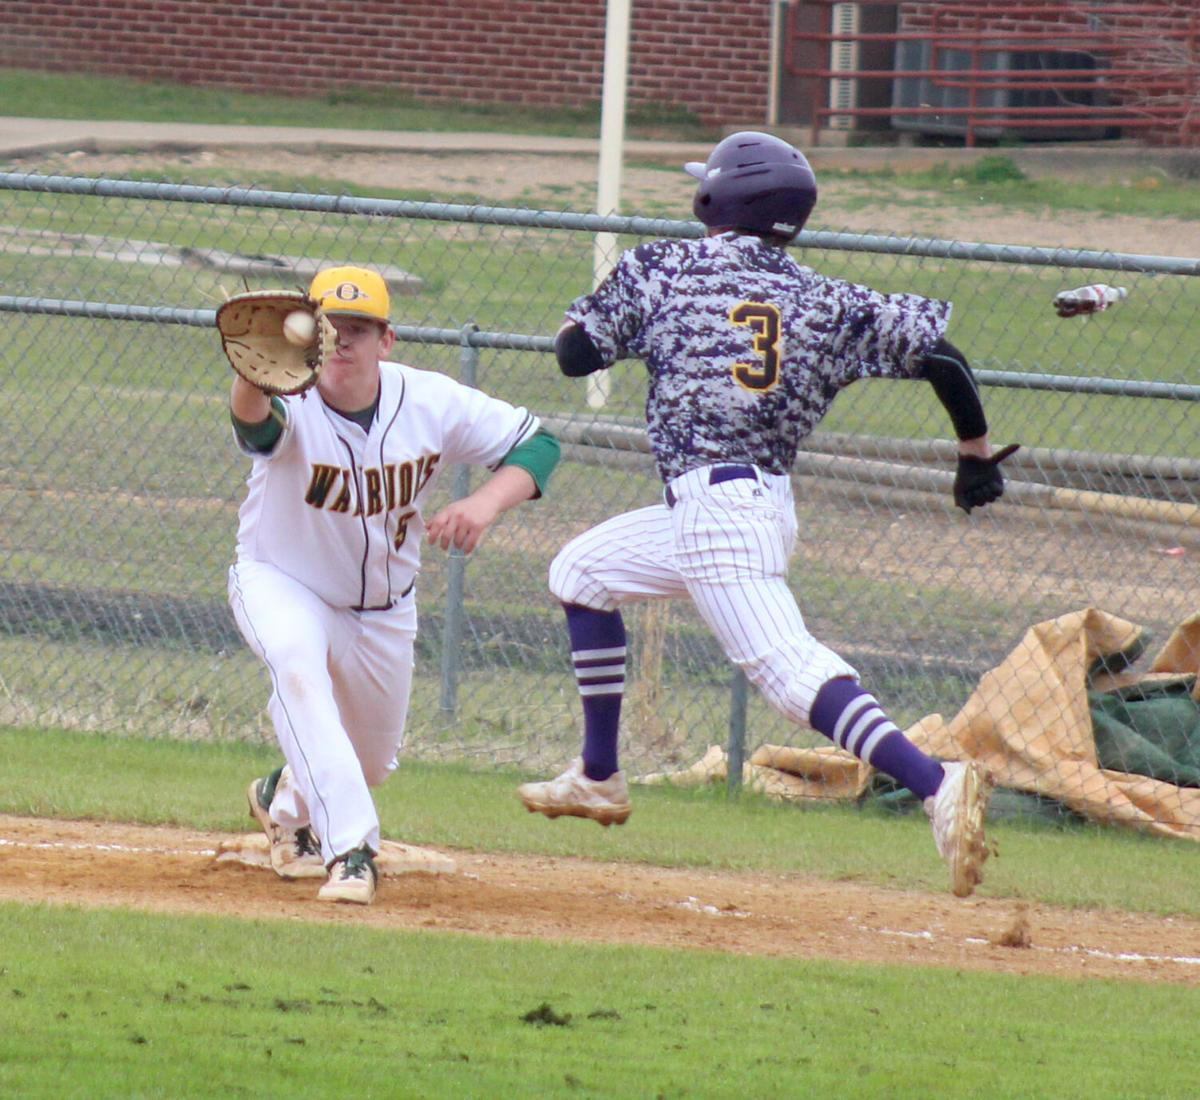 Warriors vs. Junction City baseball tourney pic.1